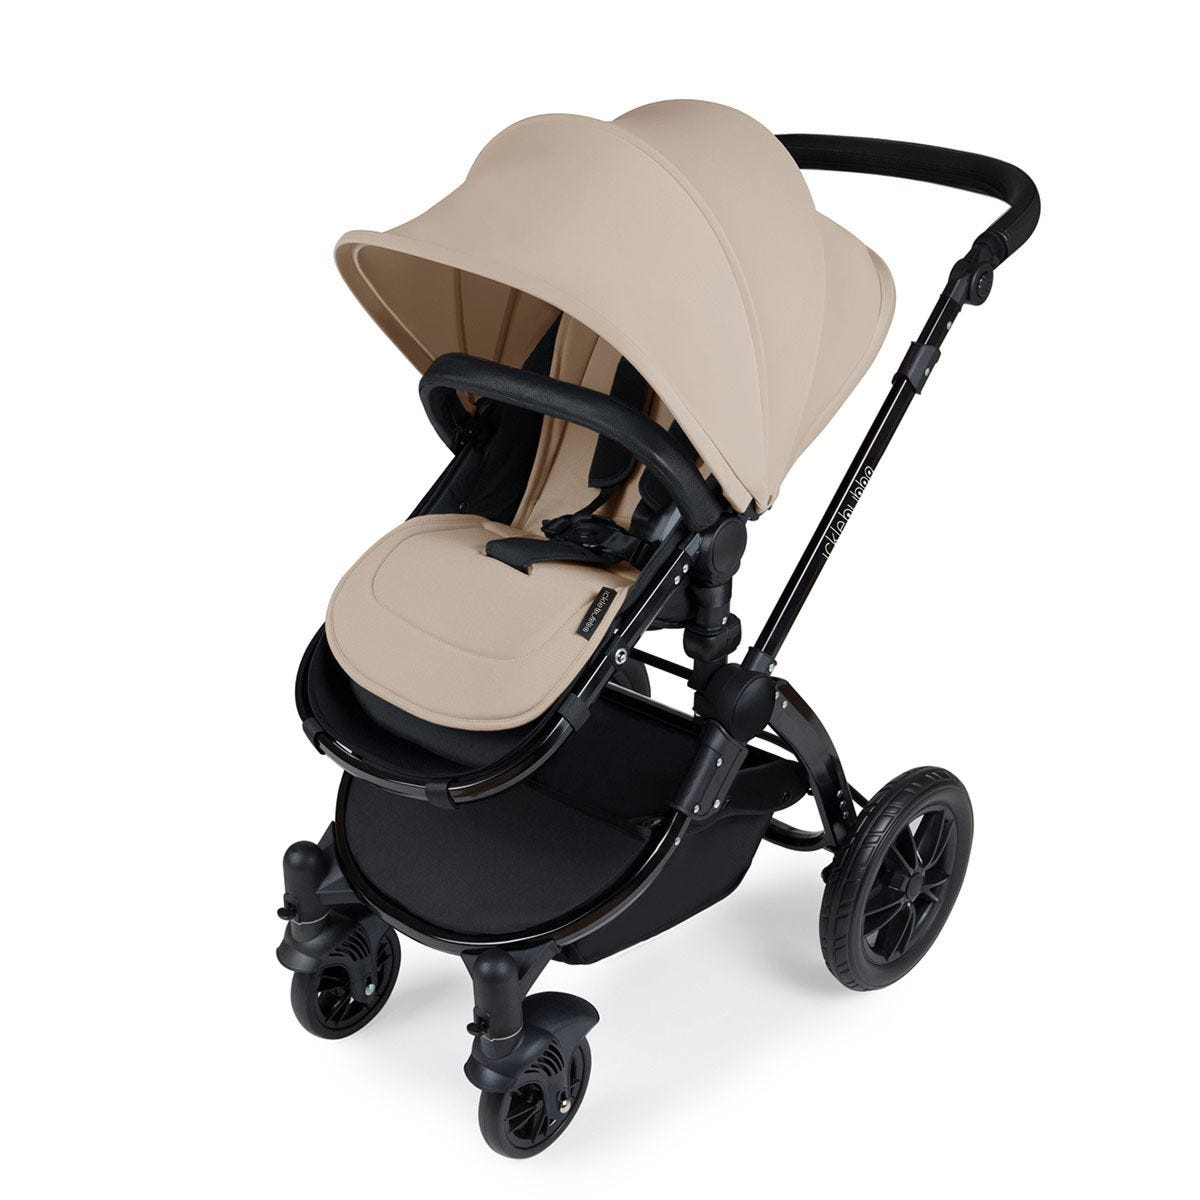 Ickle Bubba Stomp V3 i-Size Travel System with Isofix Base - Sand on Black with Black Handles